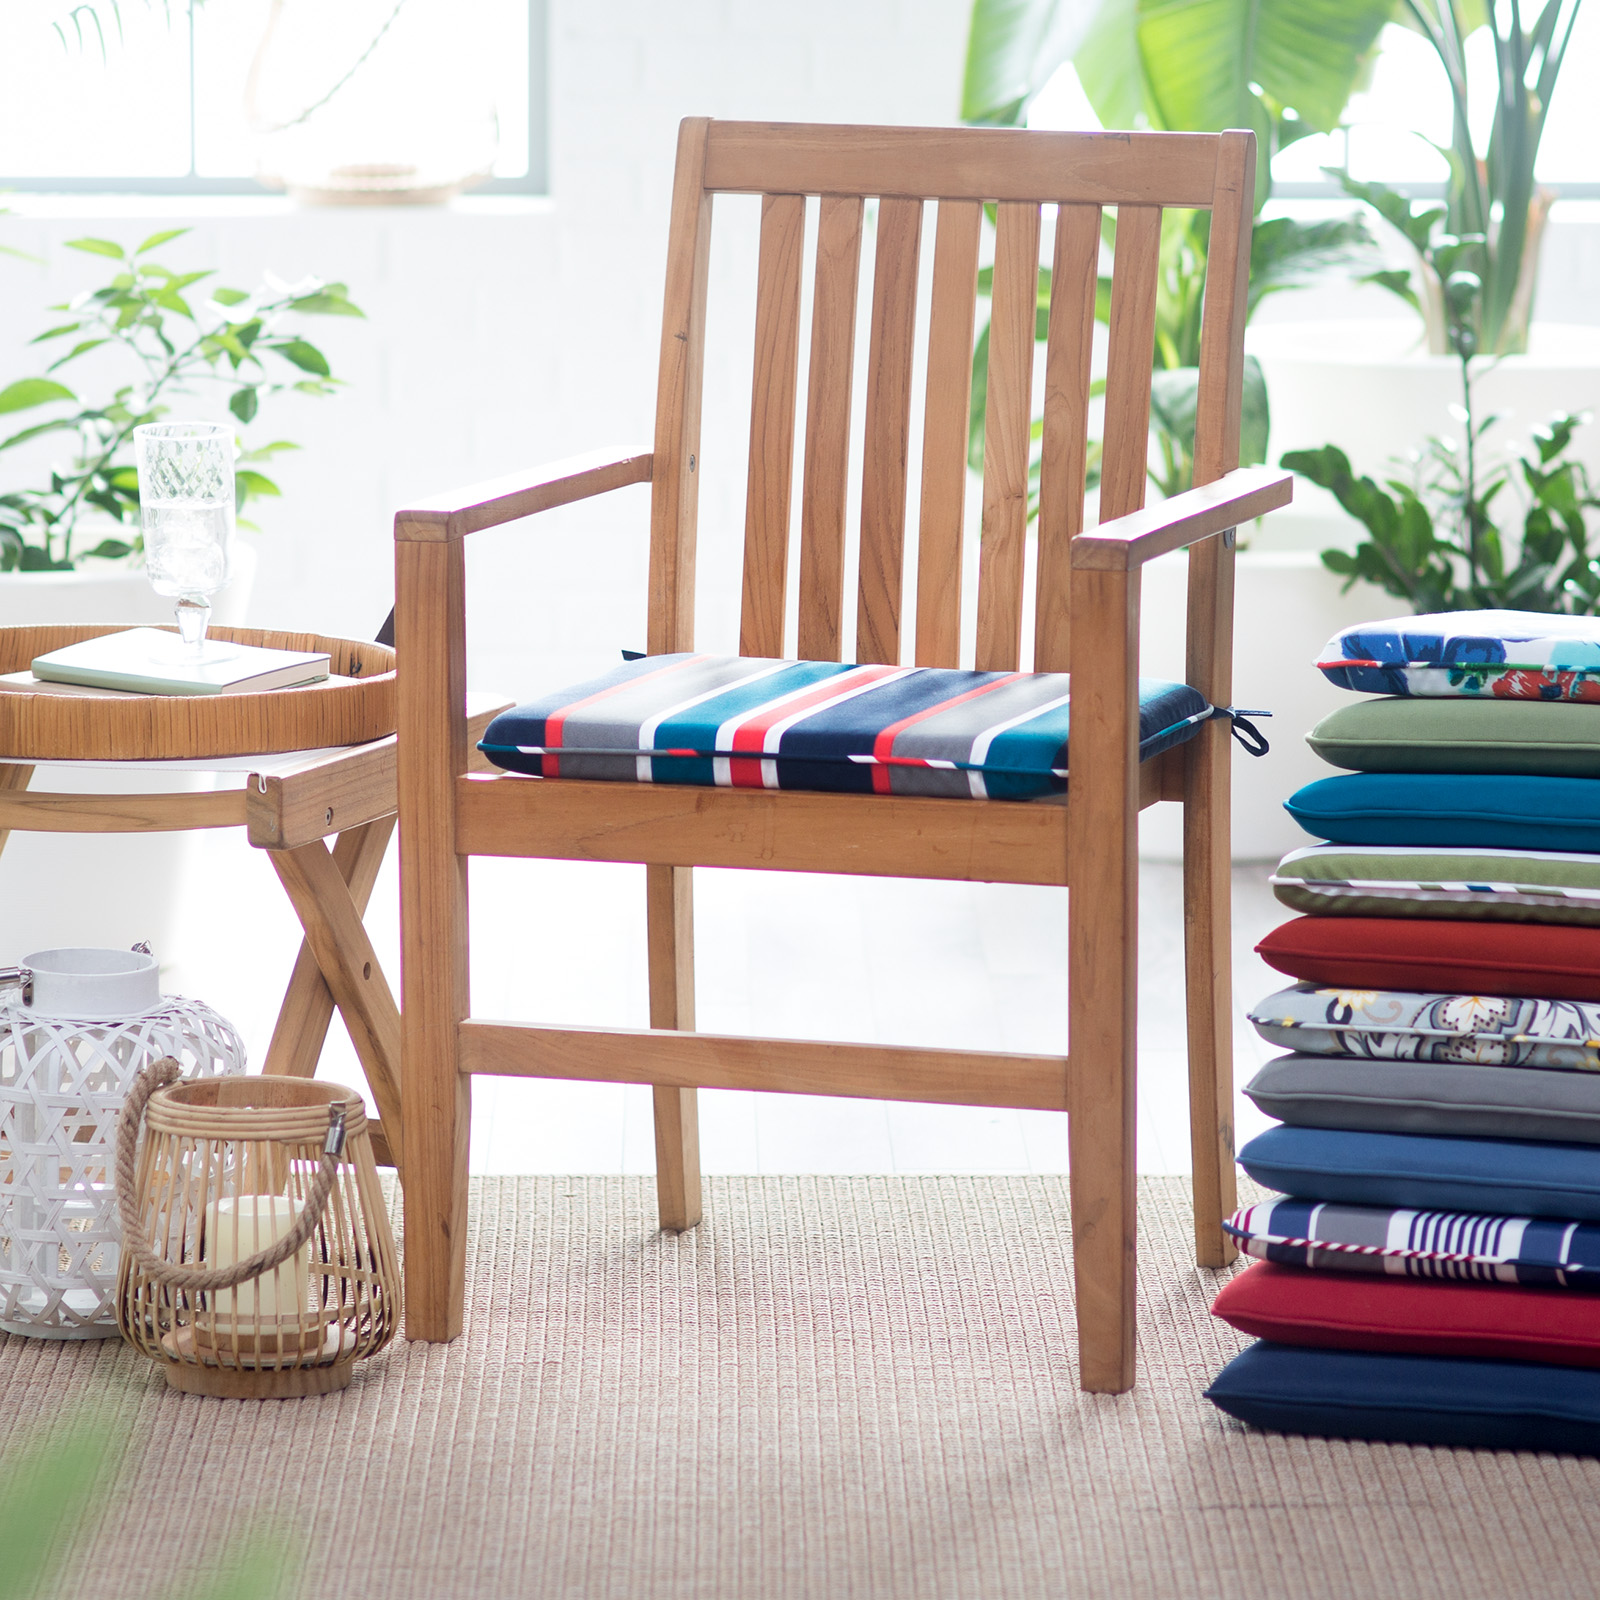 rocking chair cushions outdoor cushions on hayneedle rocking chair cushions outdoor cushions for sale - Wooden Rocking Chair Cushions